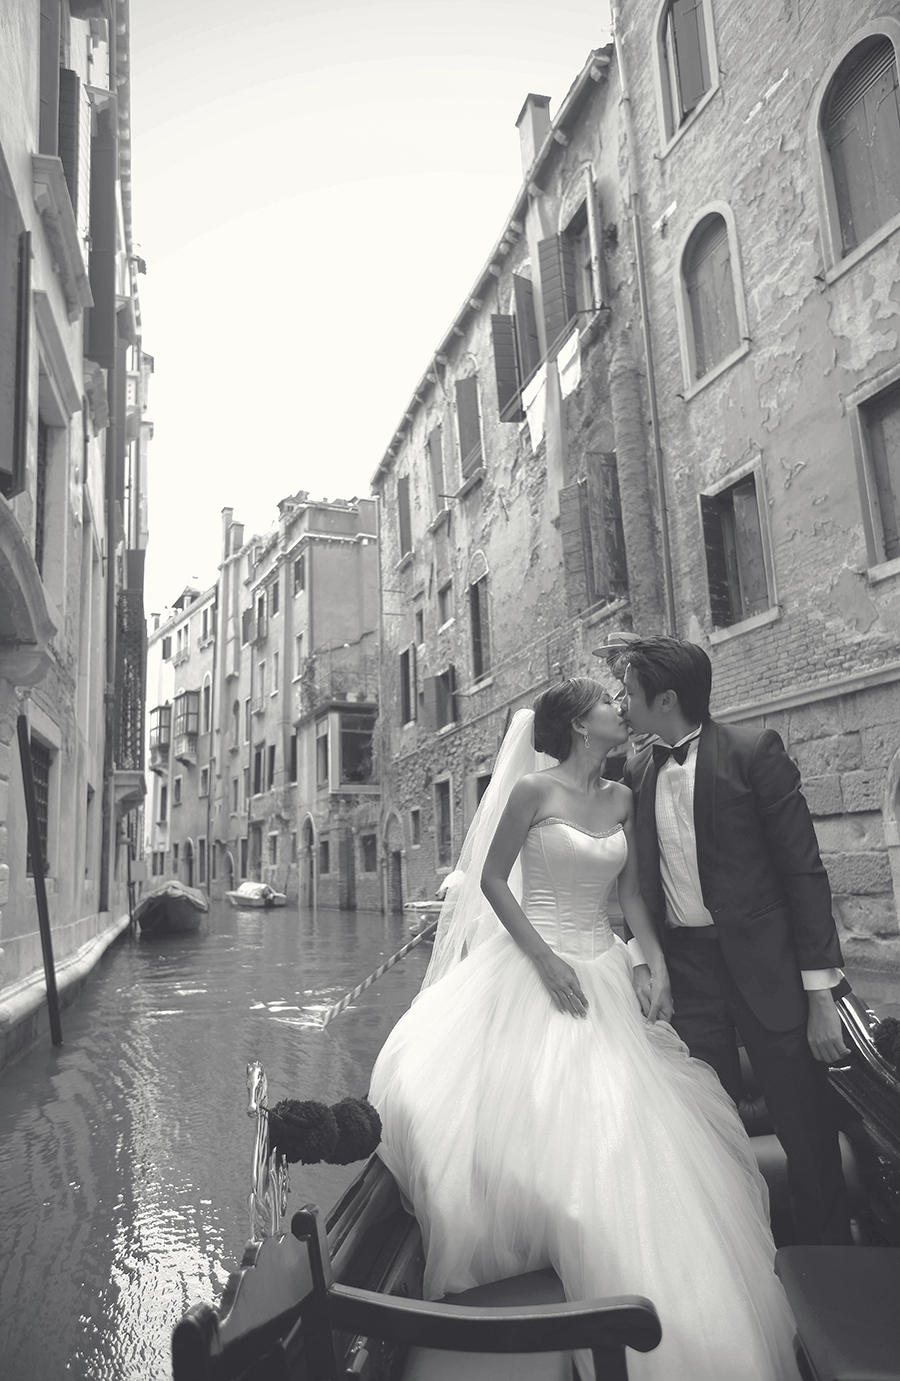 venice italy . wedding photography by kurt ahs . 05414.jpg